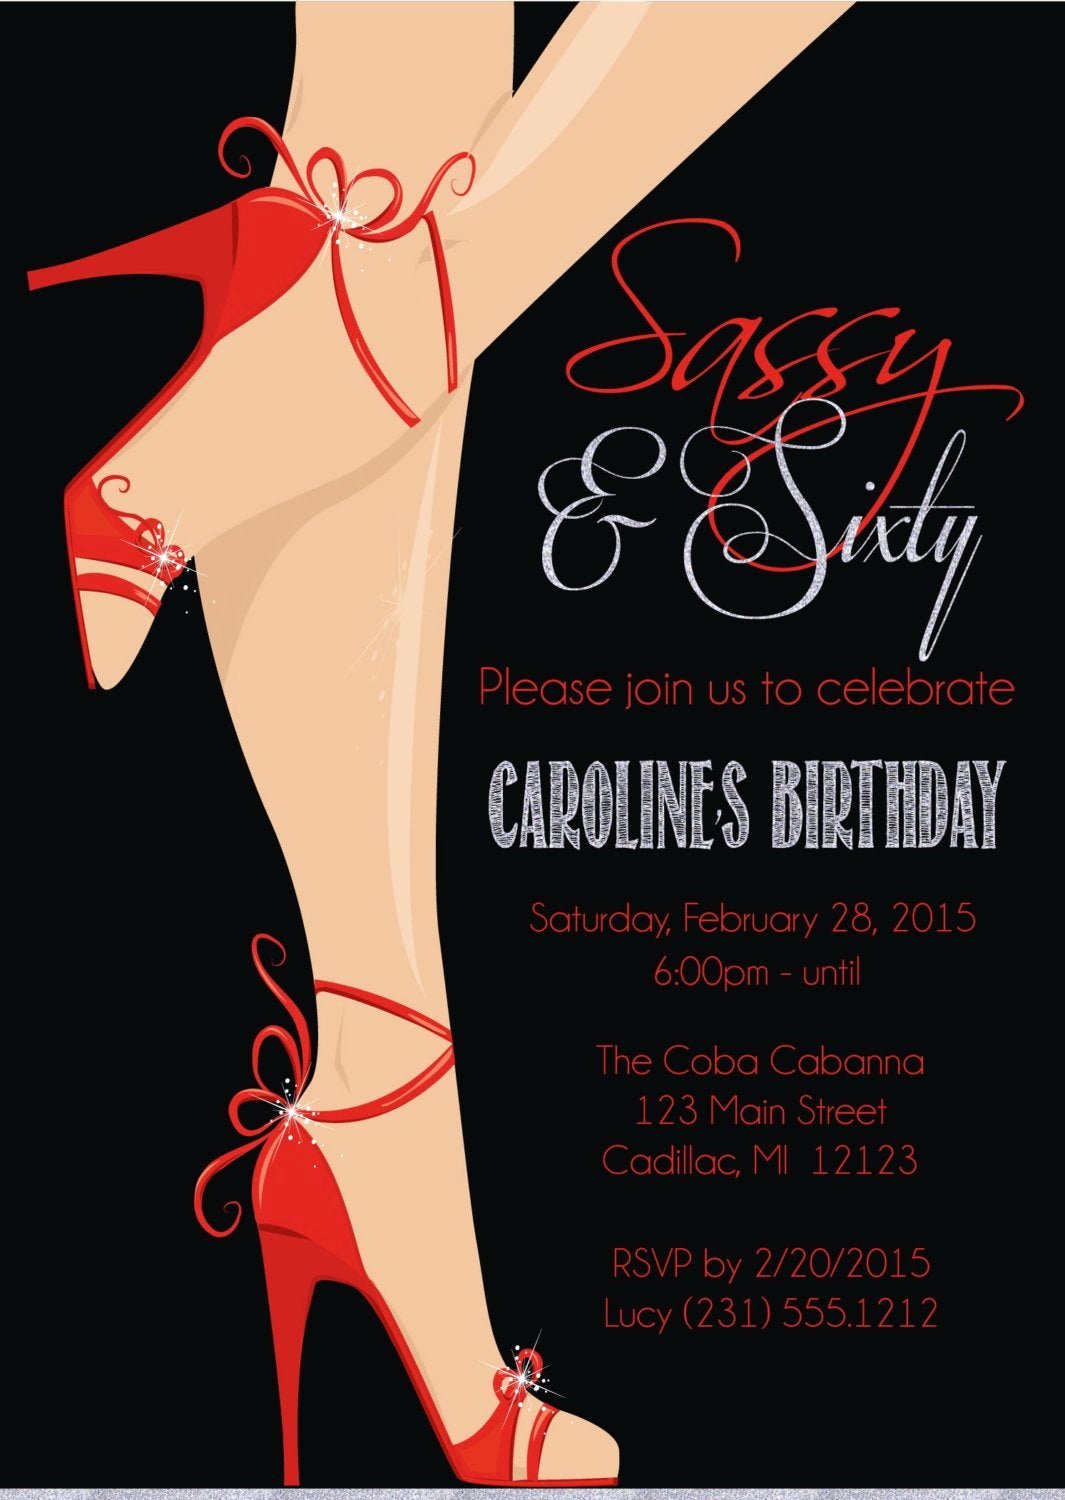 Birthday Invitations for Women Luxury Red Shoe 60th Birthday Invitation Women S Sassy & Sixty